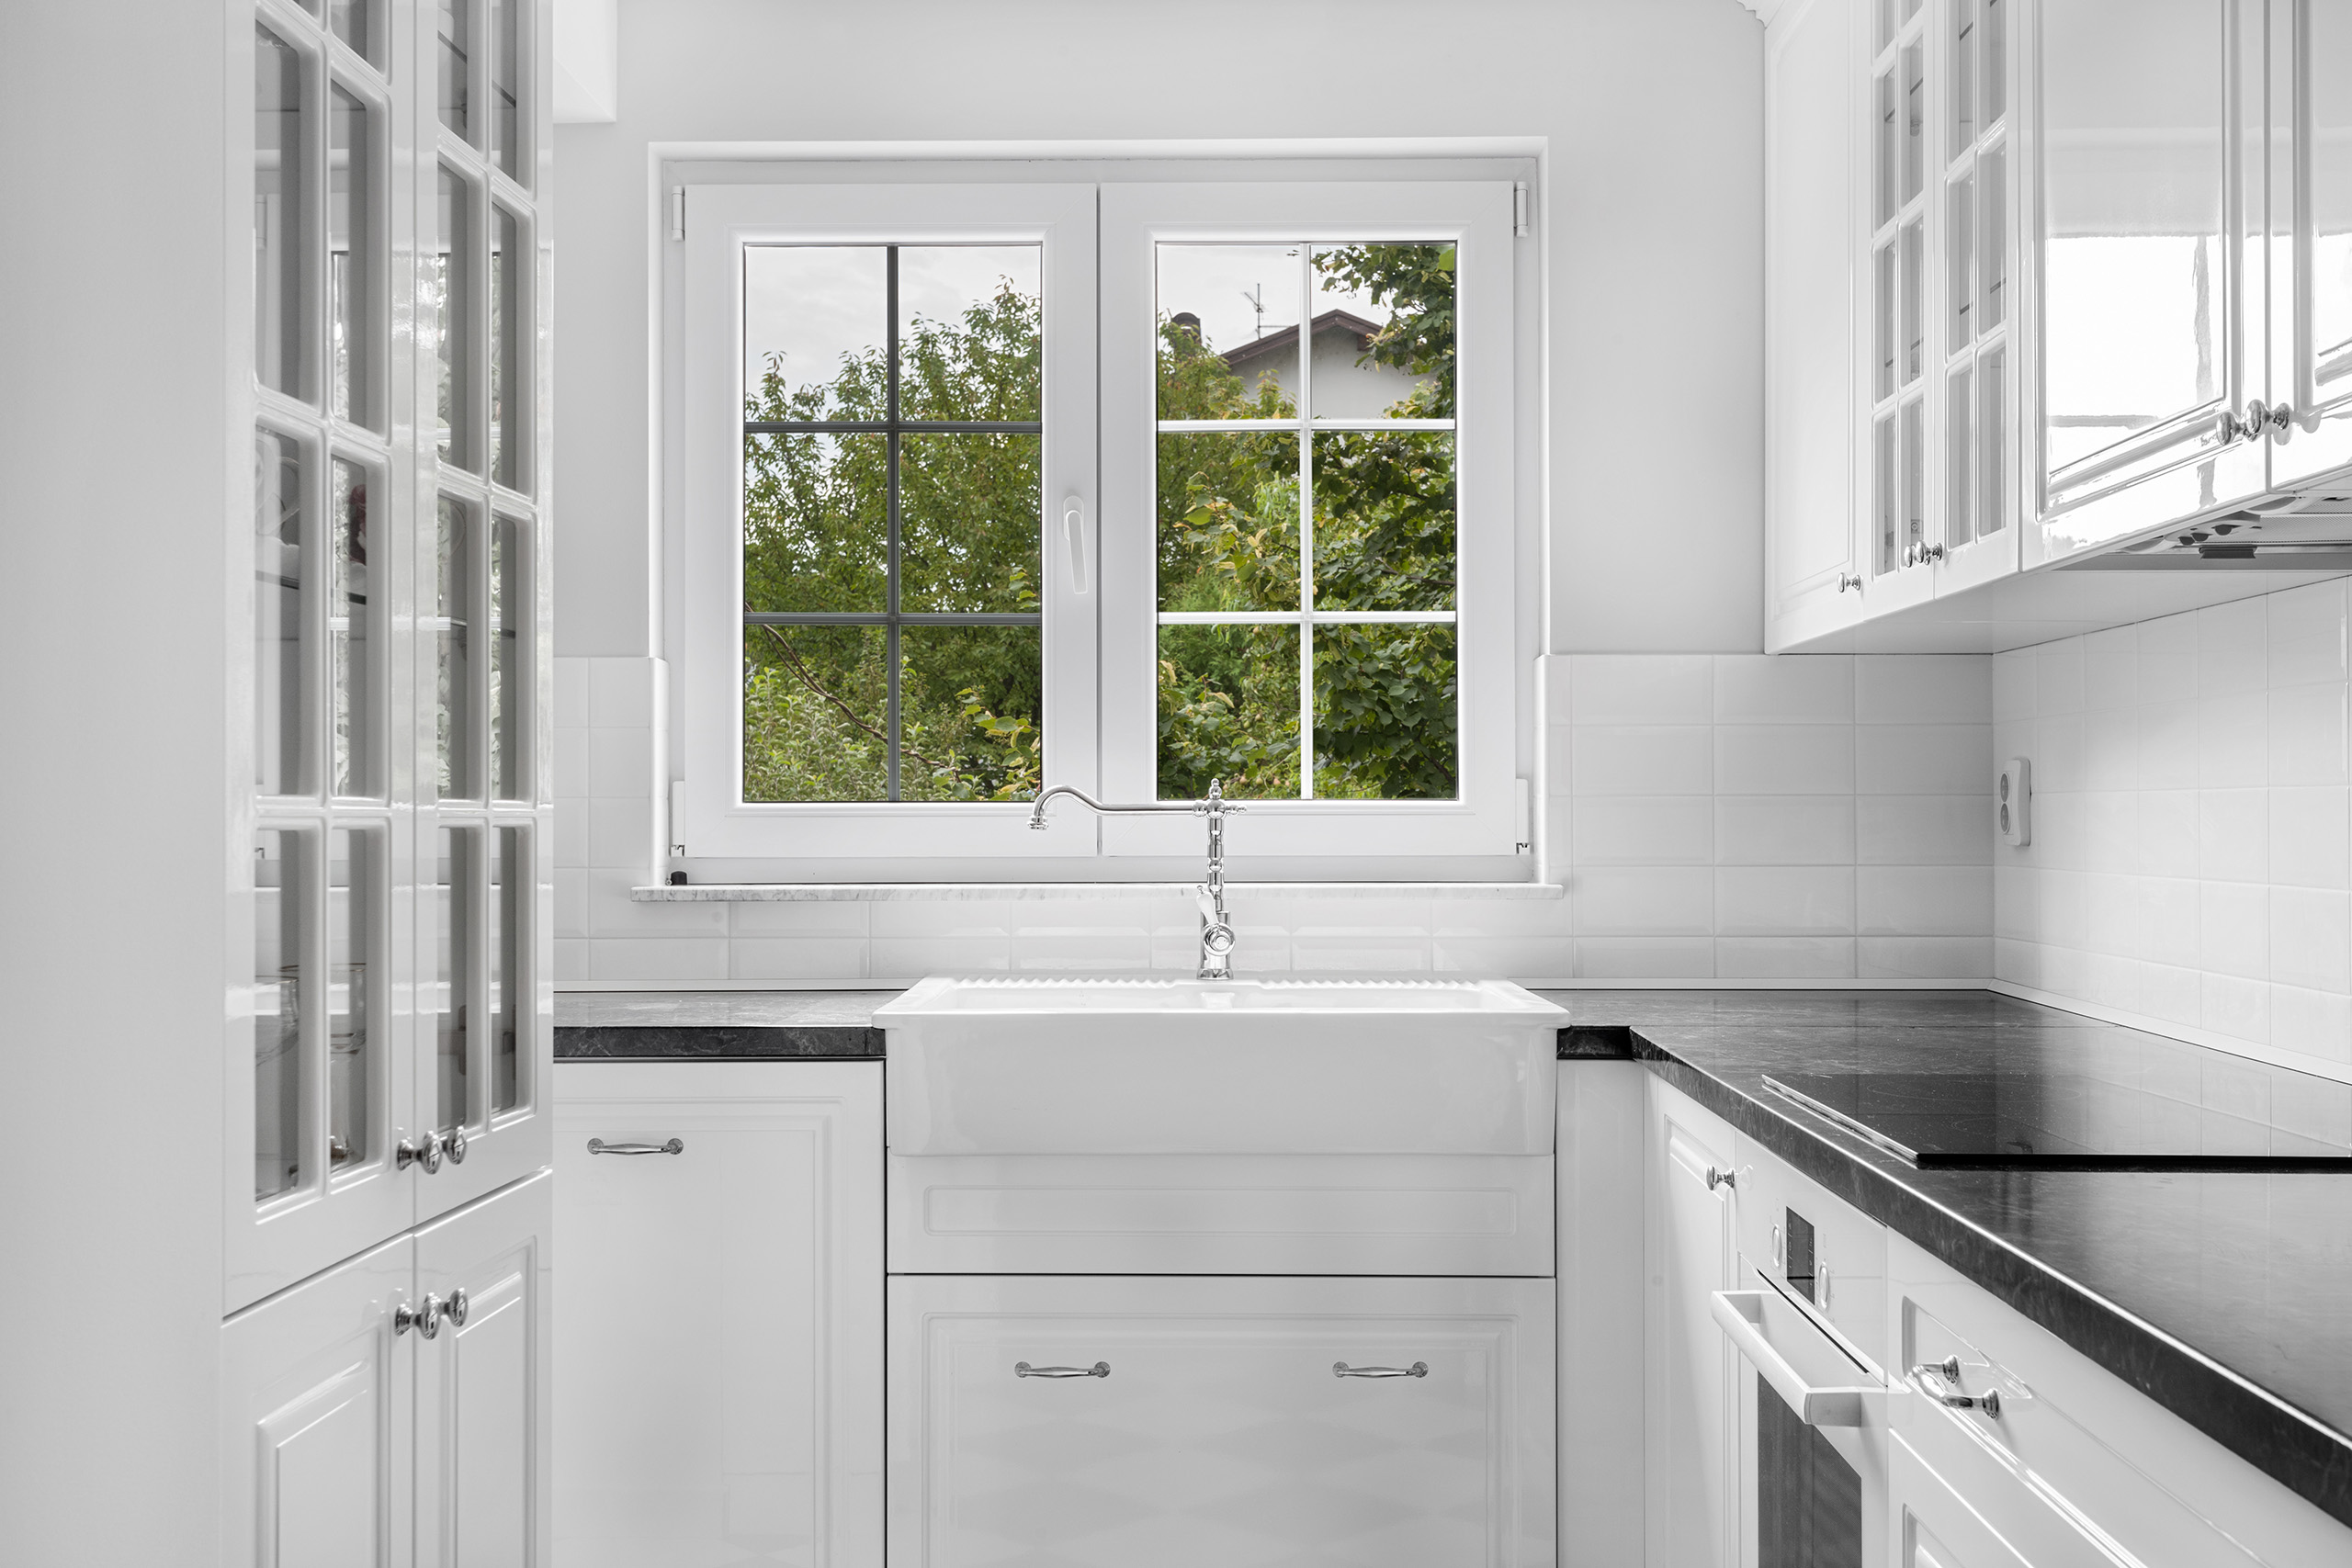 French Casement Window Suppliers East Anglia